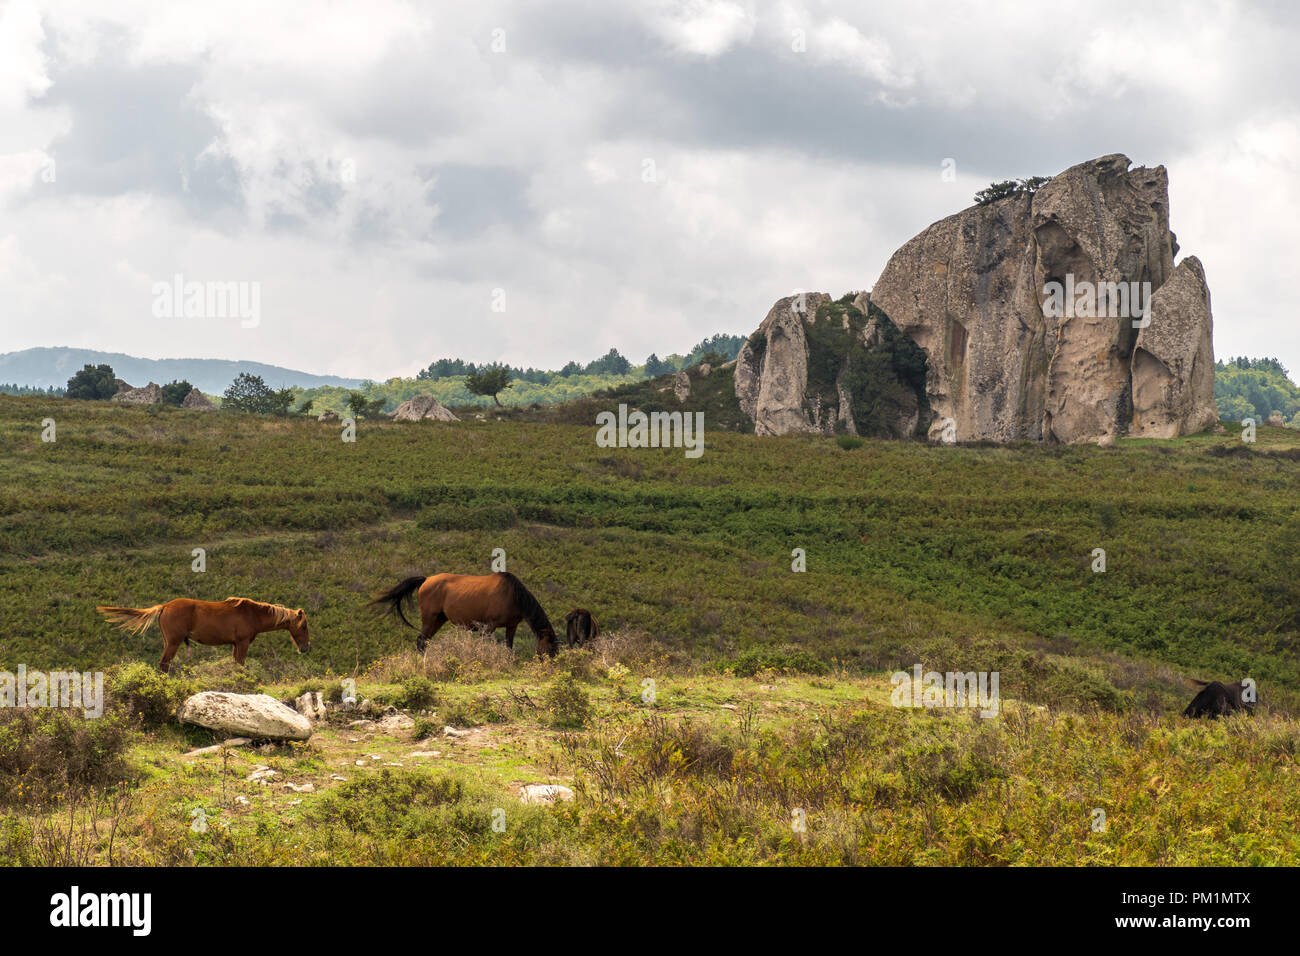 Horses pasturing in the plateau of Argimusco, in Sicily, with a natural megalith in the background - Stock Image